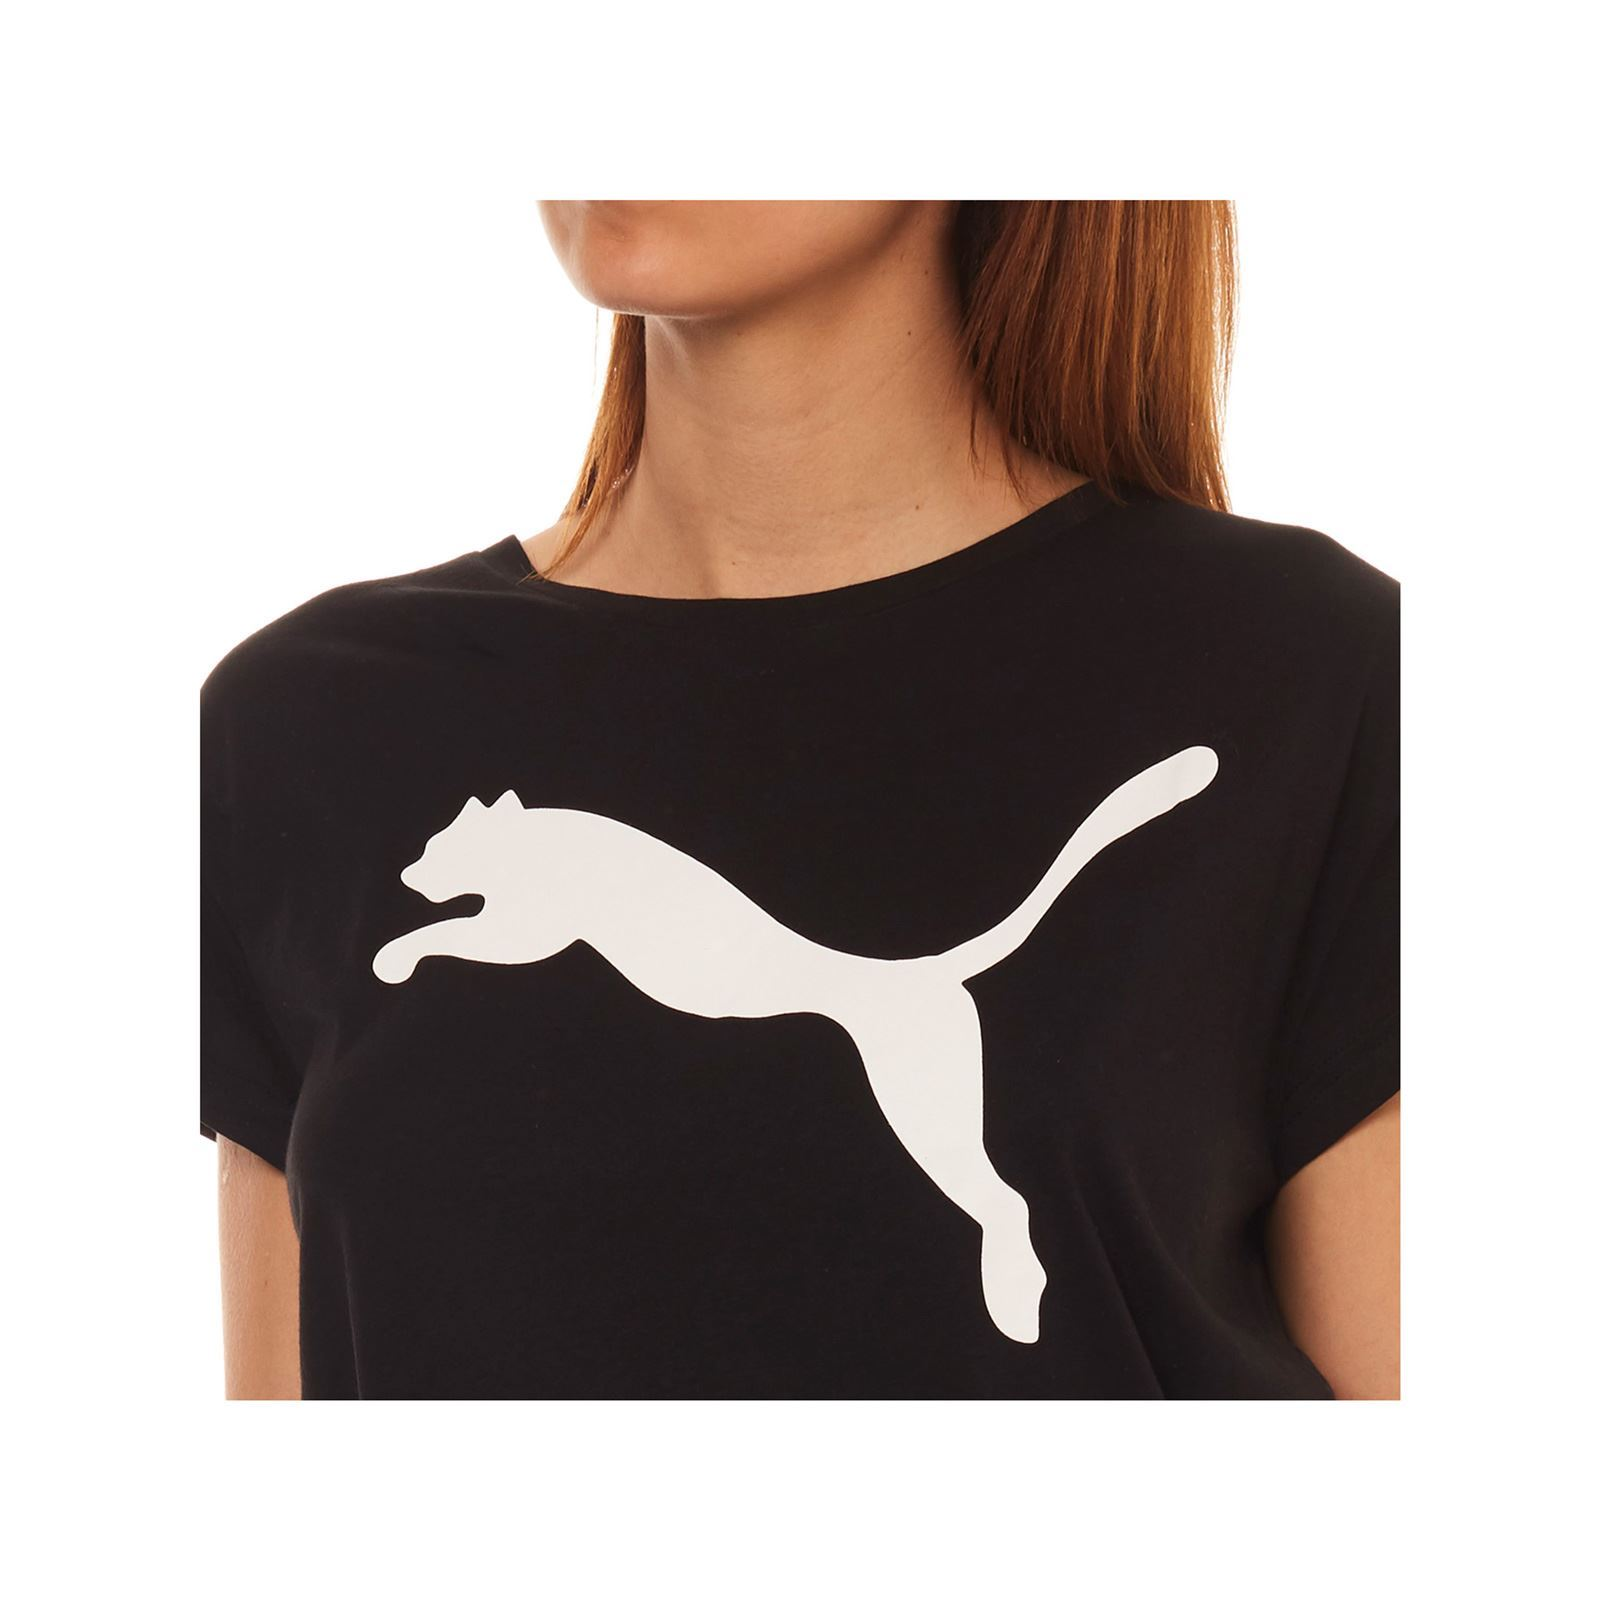 shirt T V Femme CourtesNoir Manches Puma Nm8n0vwO